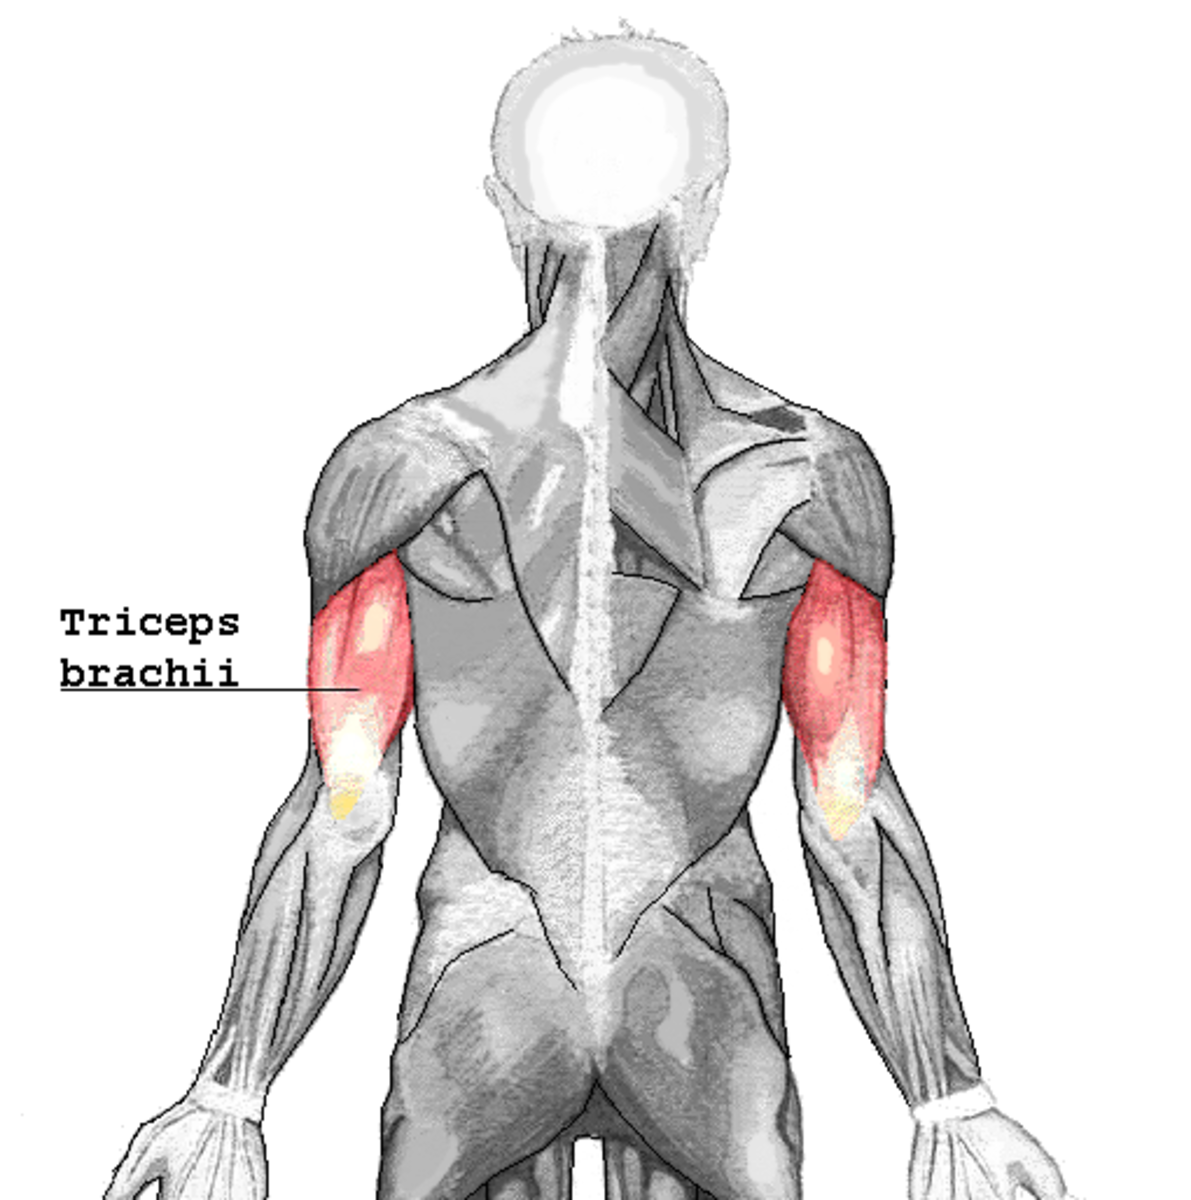 The triceps brachia muscles seen from behind.